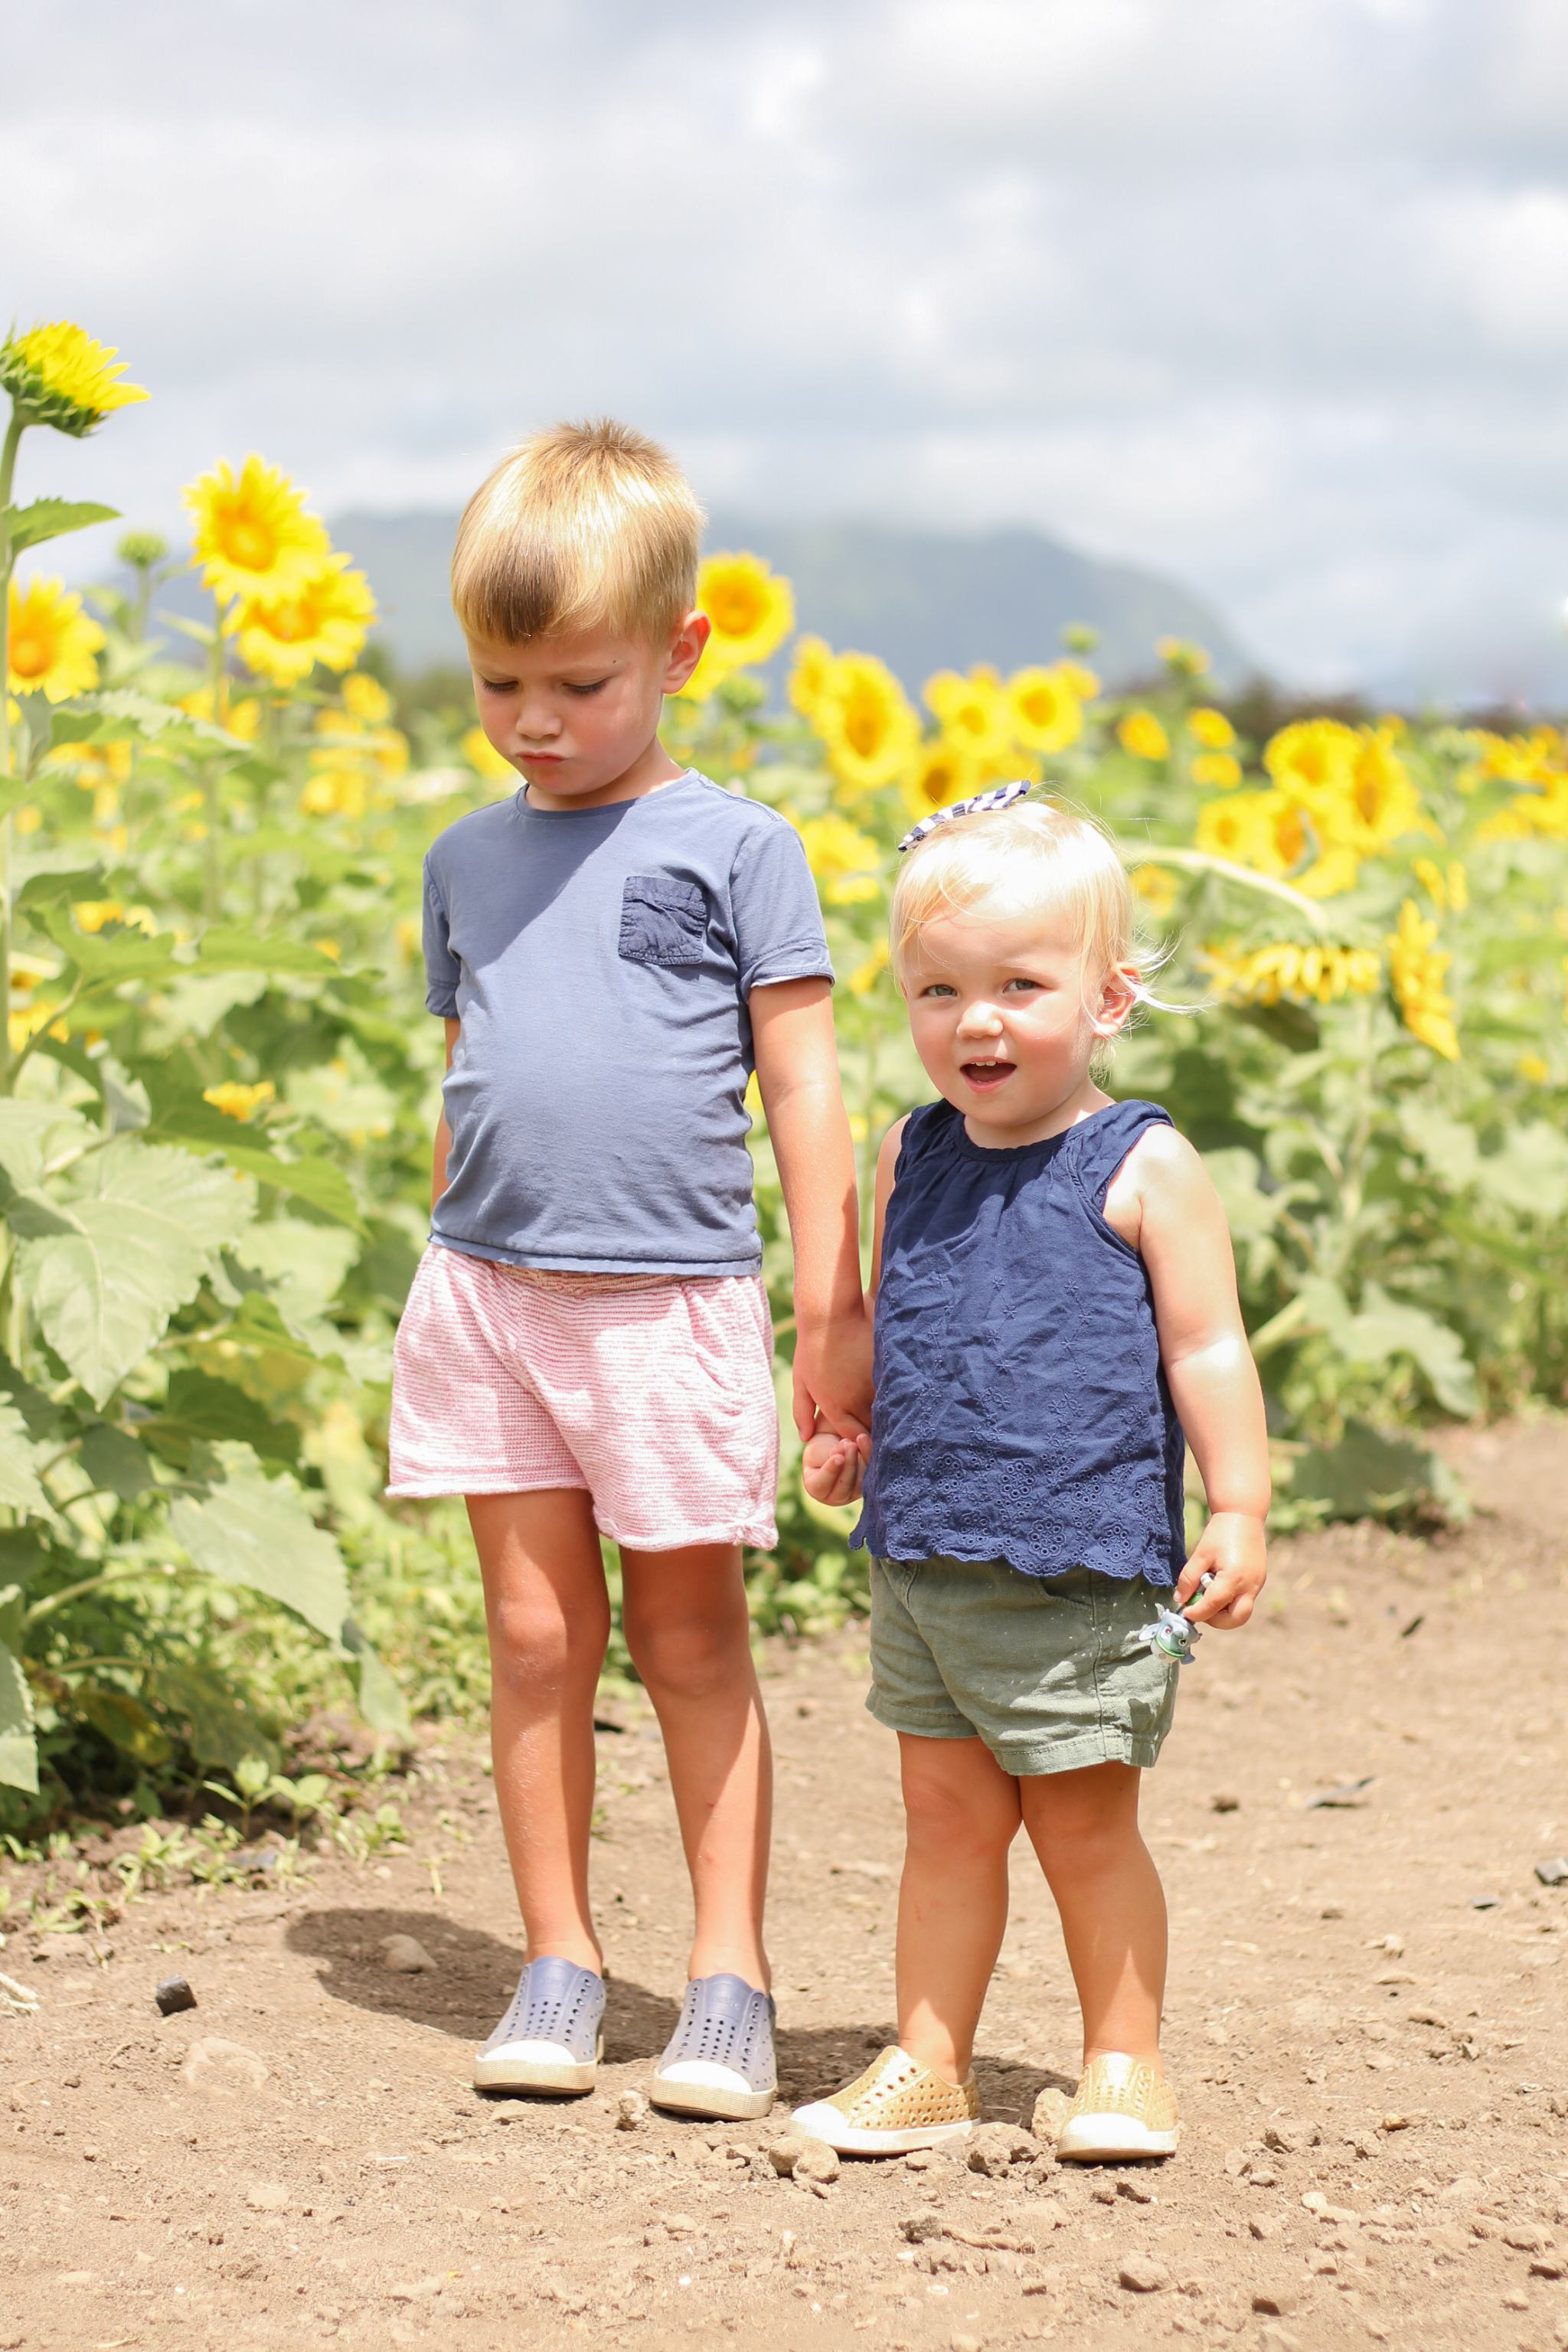 Waimanalo Country Farms - Hawaii - things to do in Hawaii - traveling in Hawaii - hawaii with kids - oahu with kids - sunflower field - sunflowers in hawaii - toddler style - toddler boy style - toddler girl style